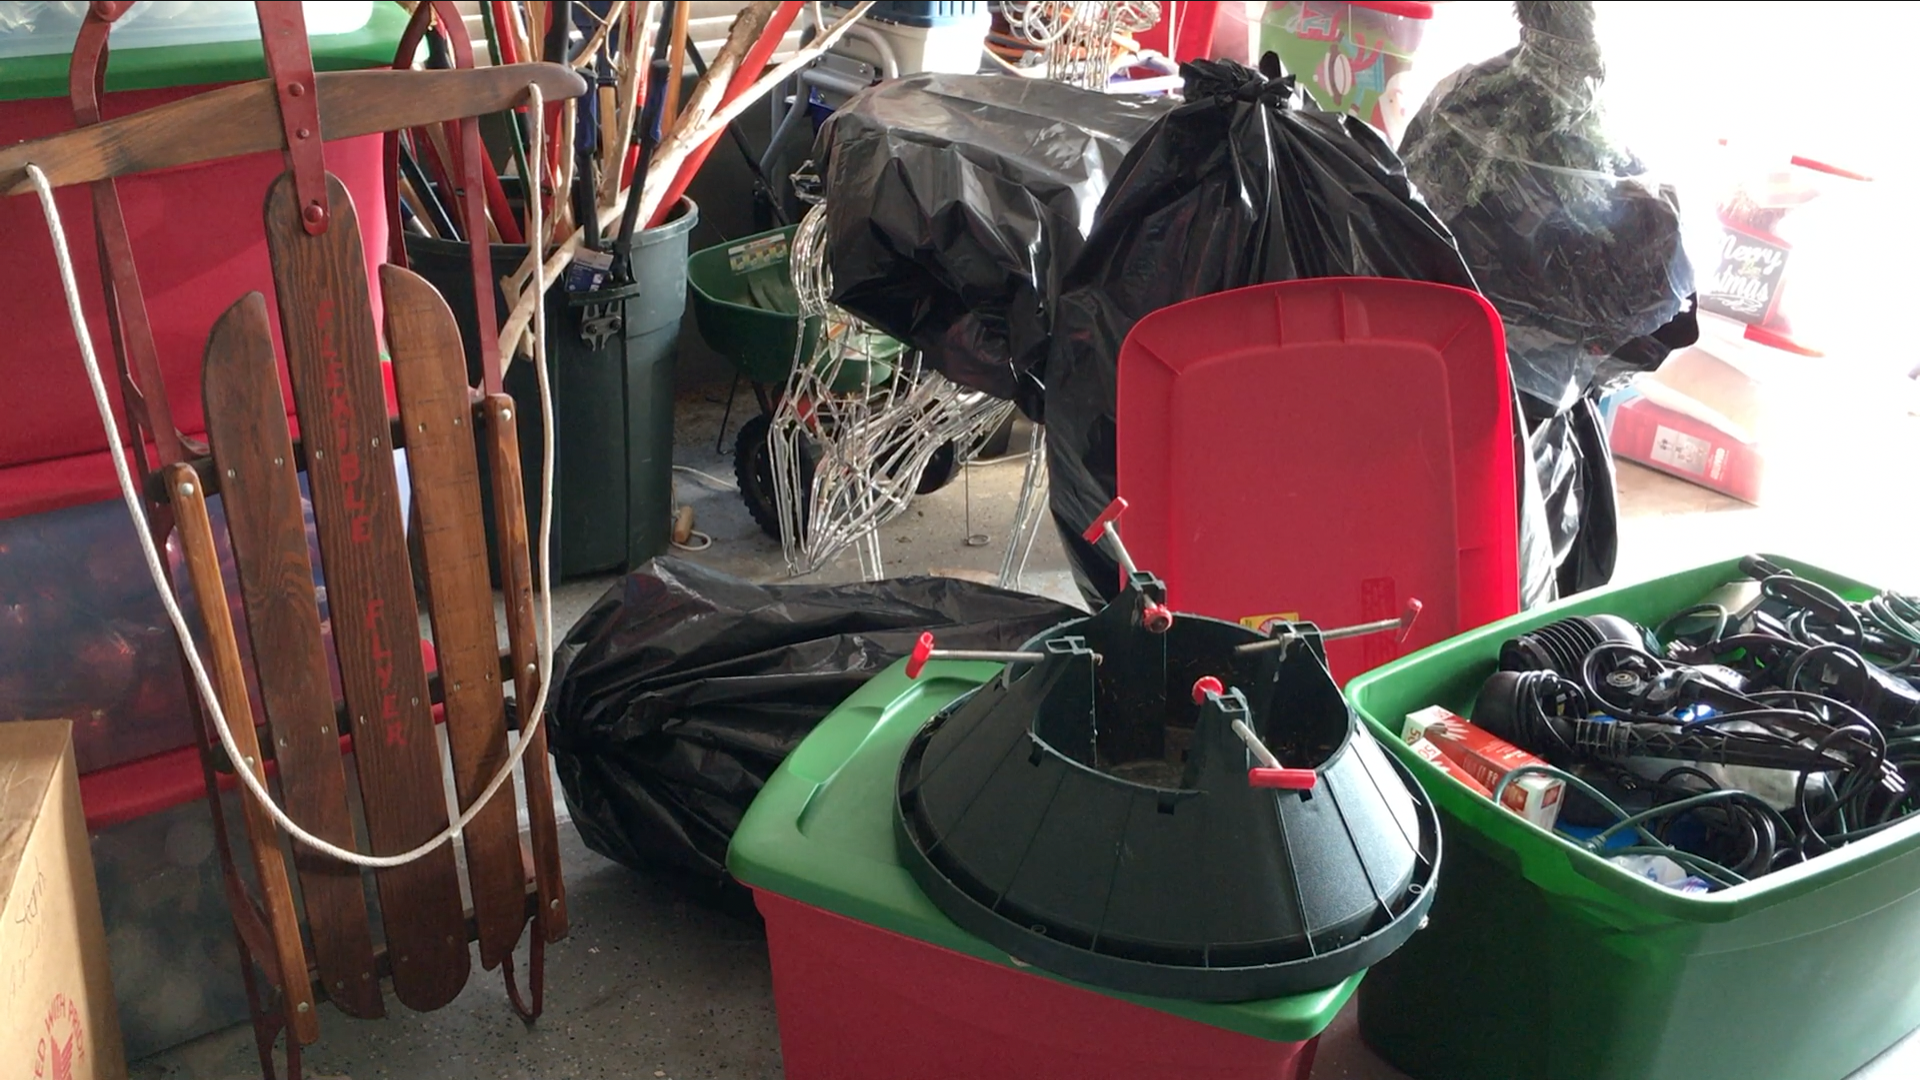 Christmas Cleanup storage and organization